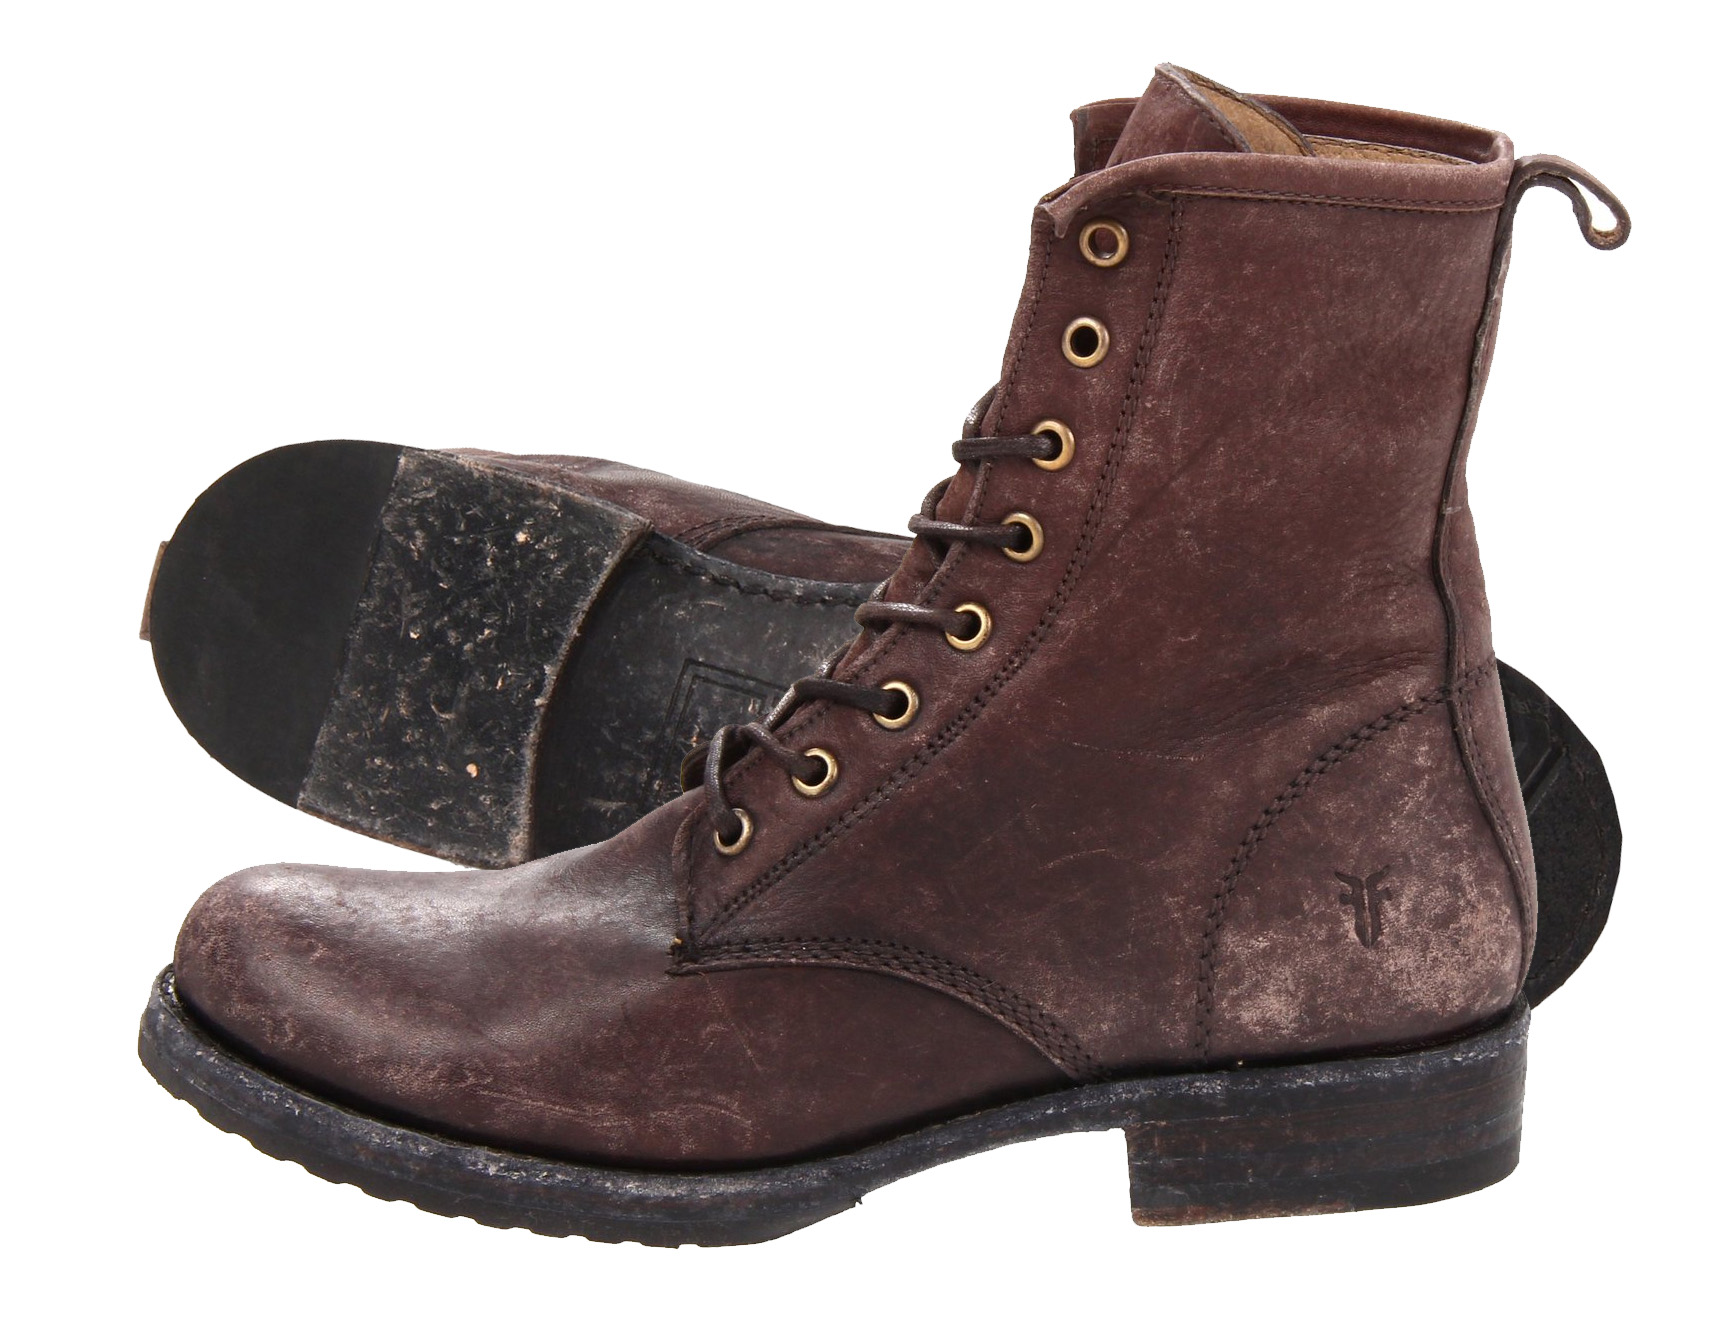 503df3f8486 FRYE Womens Veronica Combat Boot dark brown stone washed - My ...